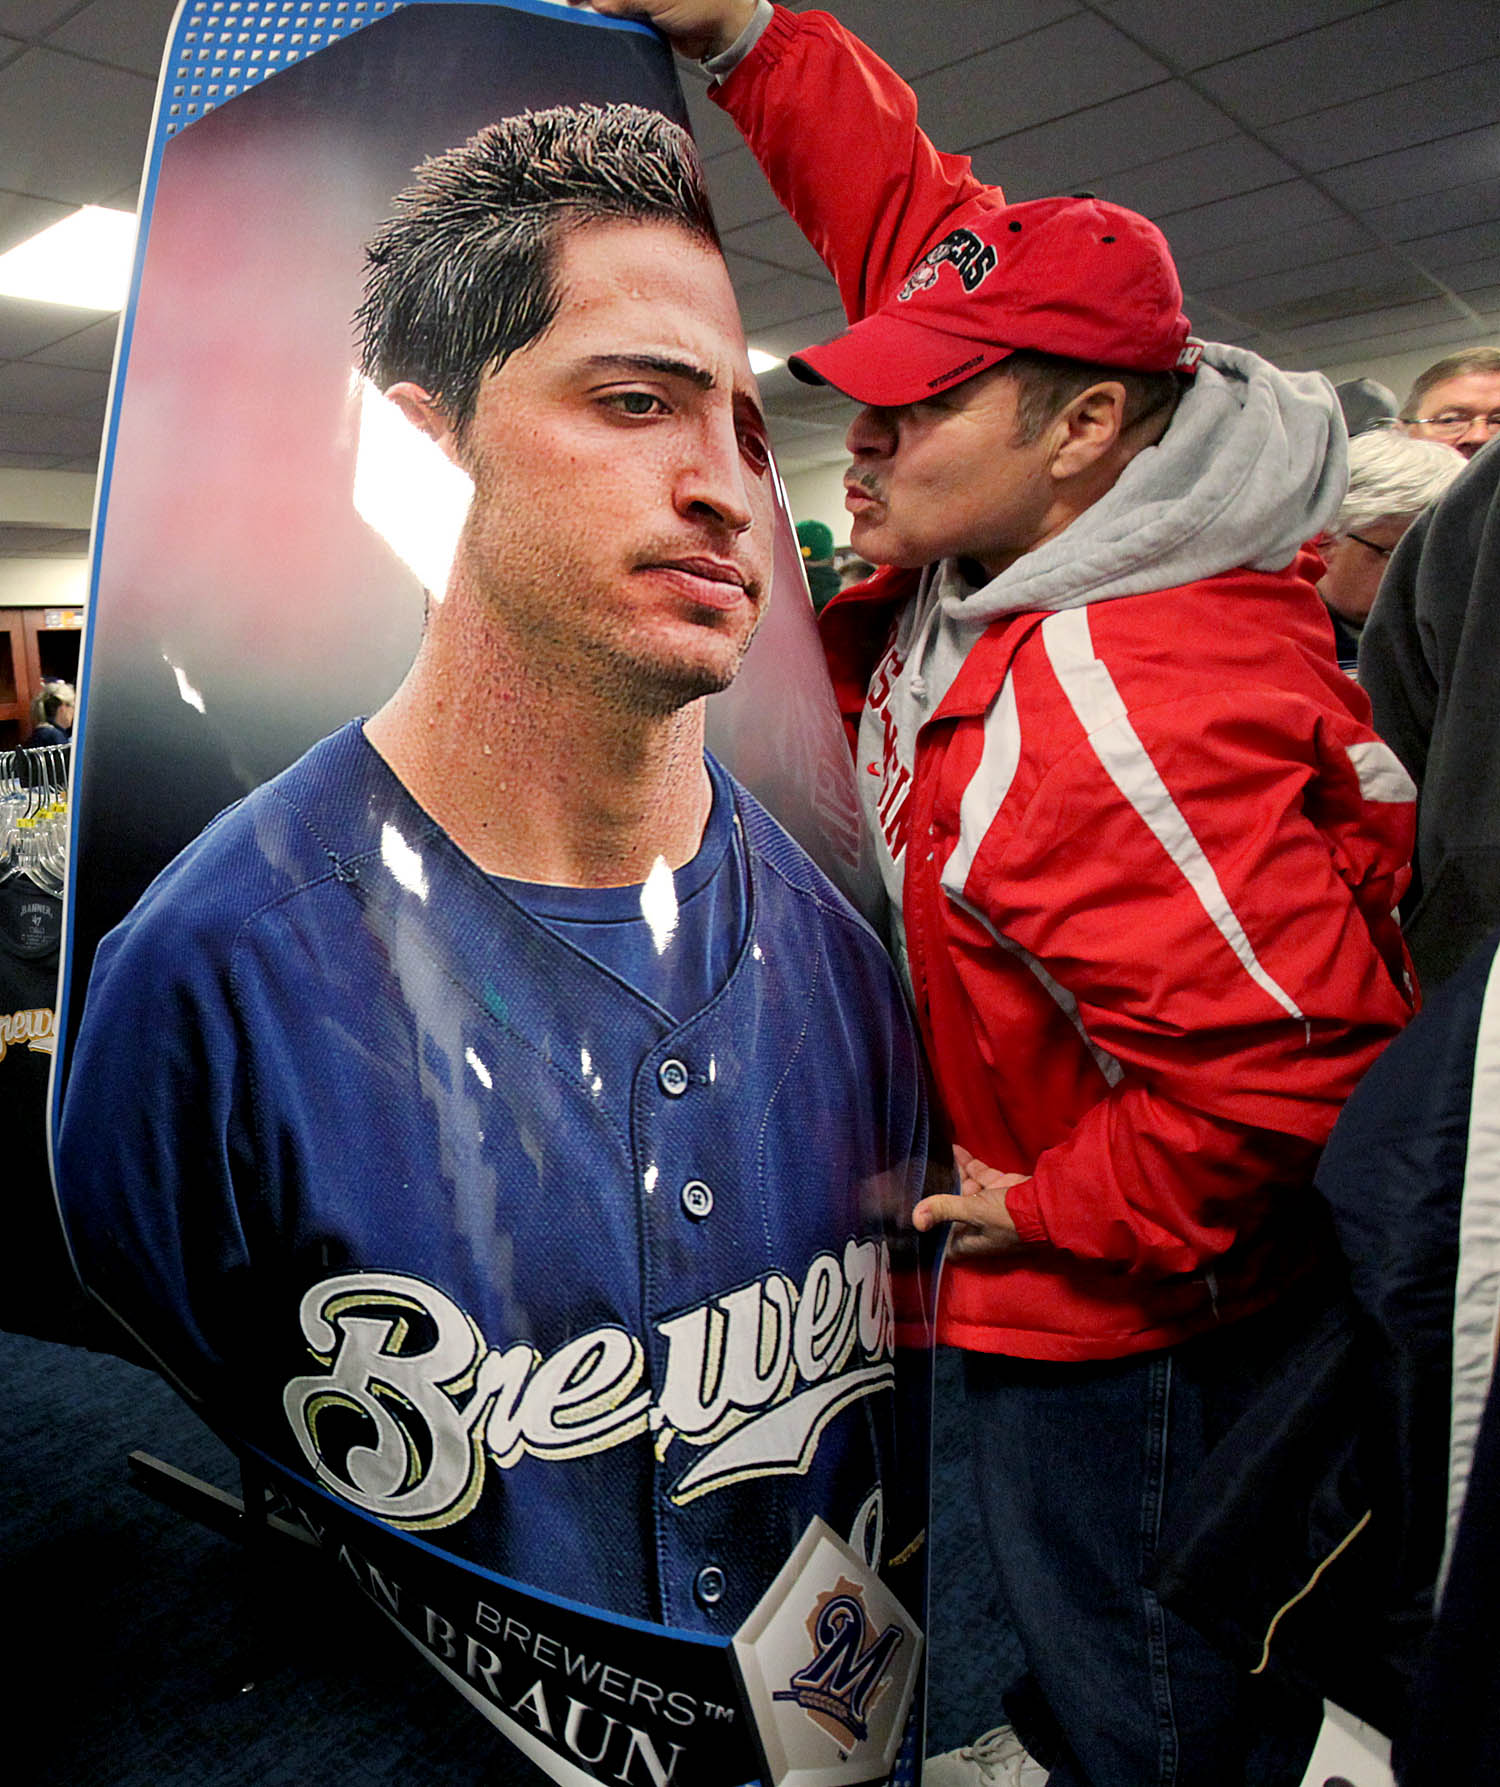 {quote}This is all I want for Christmas,{quote} says Victor Moreno of Racine as he puckers up to an oversized Ryan Braun poster he scored at the Milwaukee Brewers Annual Clubhouse Sale at Miller Park. His wife quickly responded {quote}that's all you are getting.{quote}